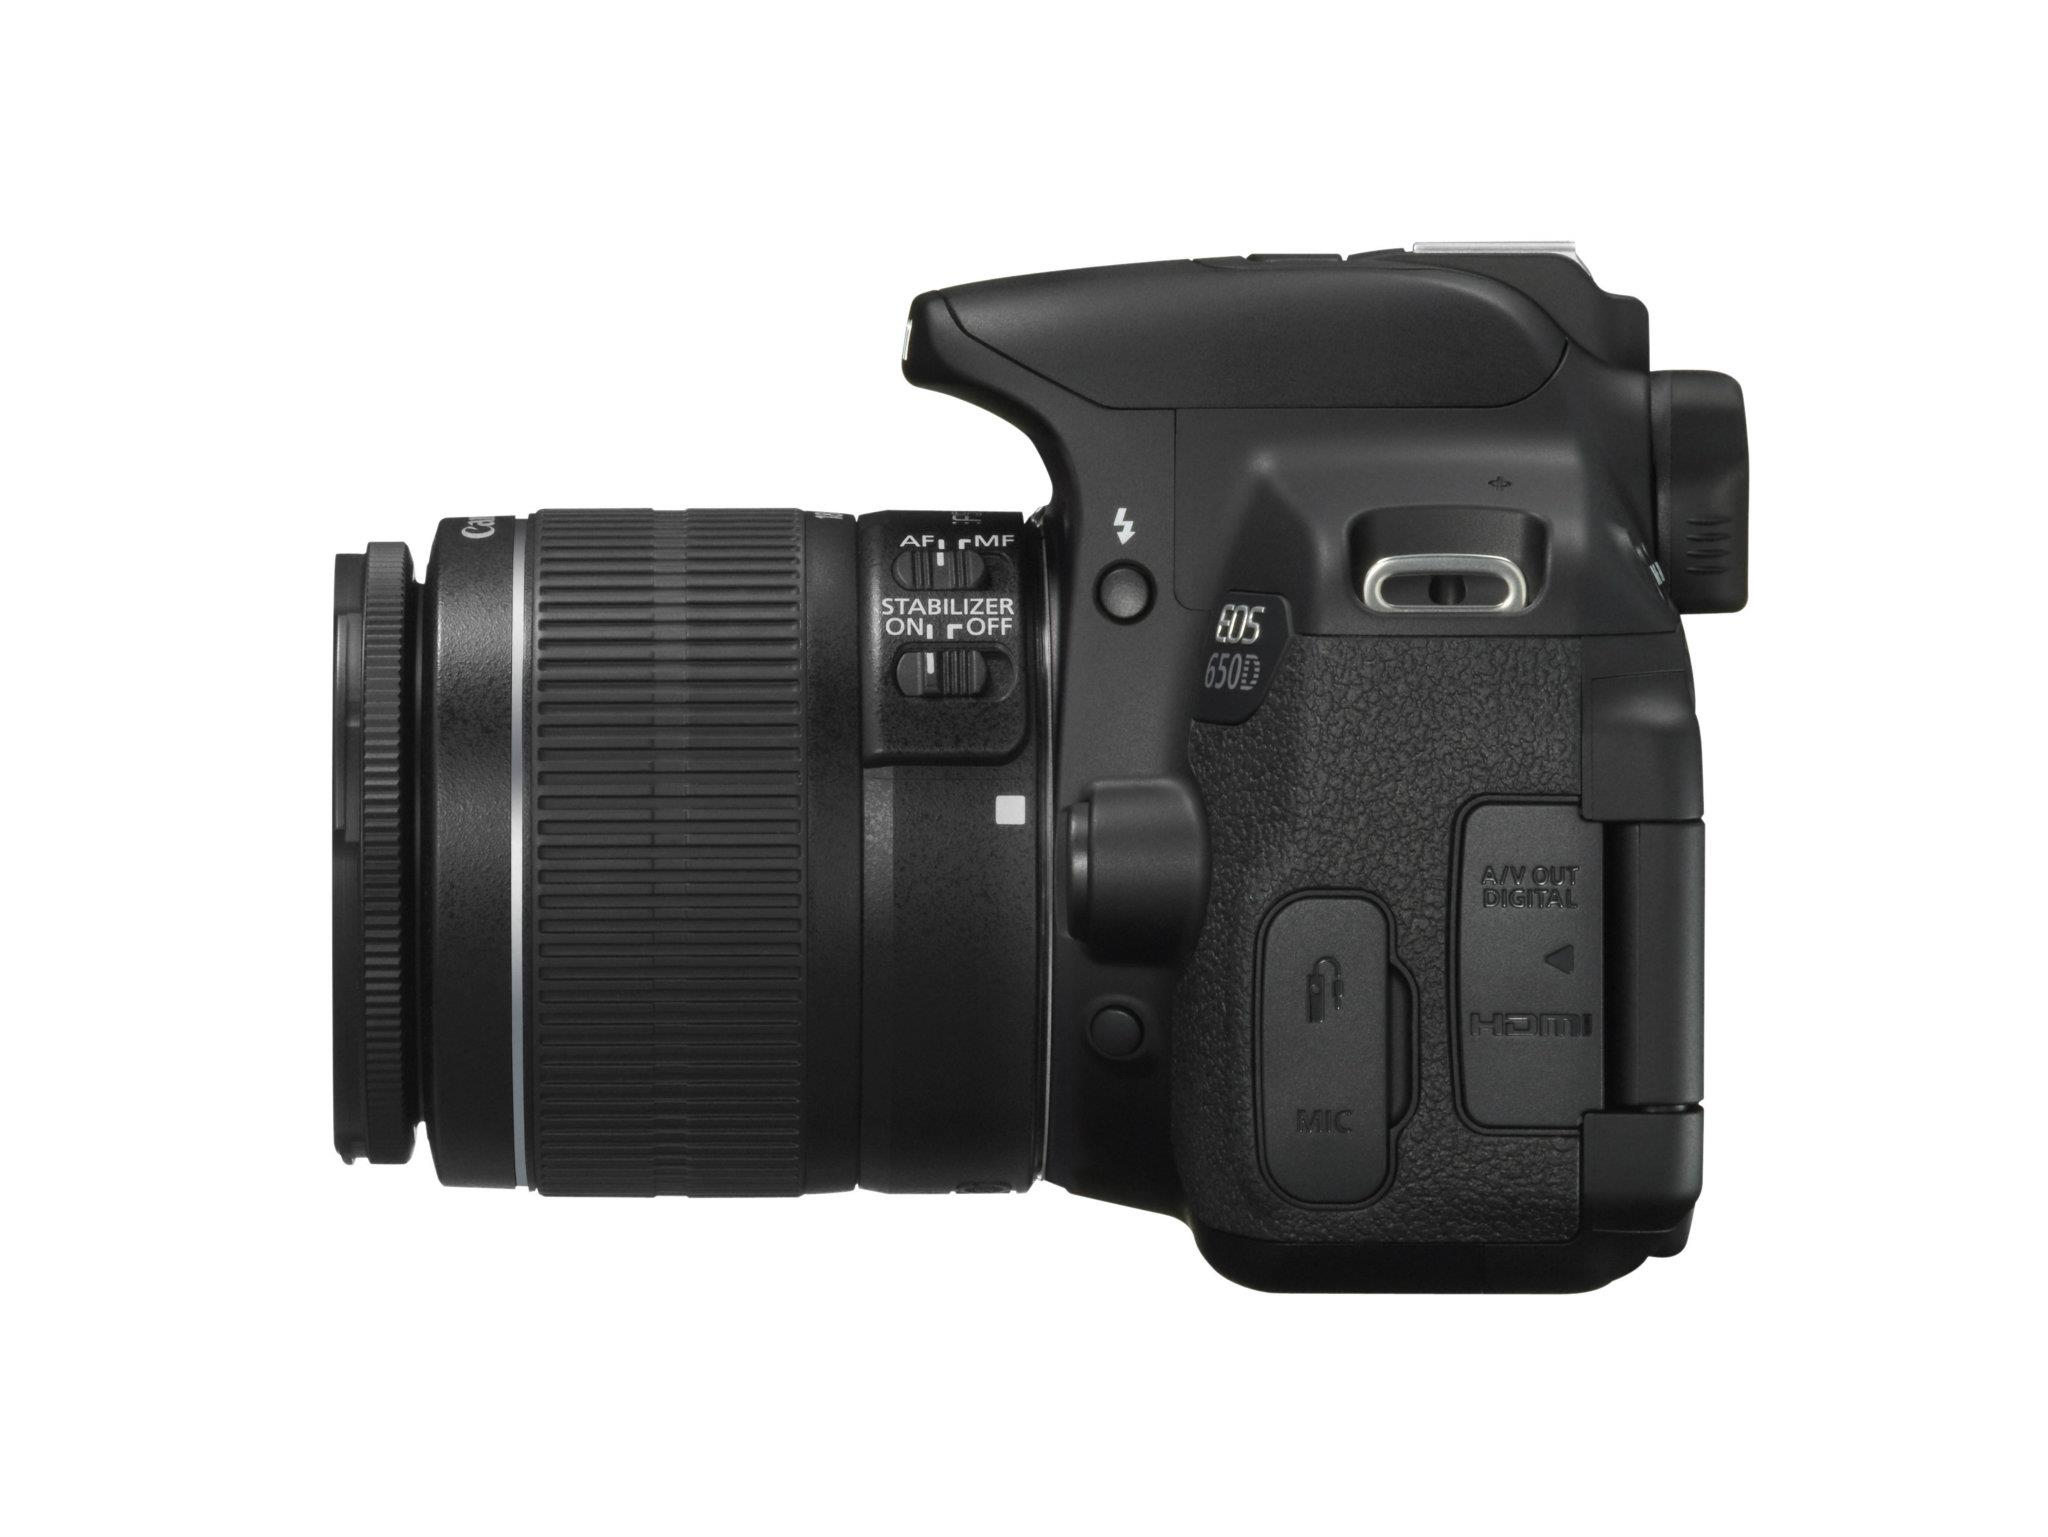 canon eos rebel t3i user manual download